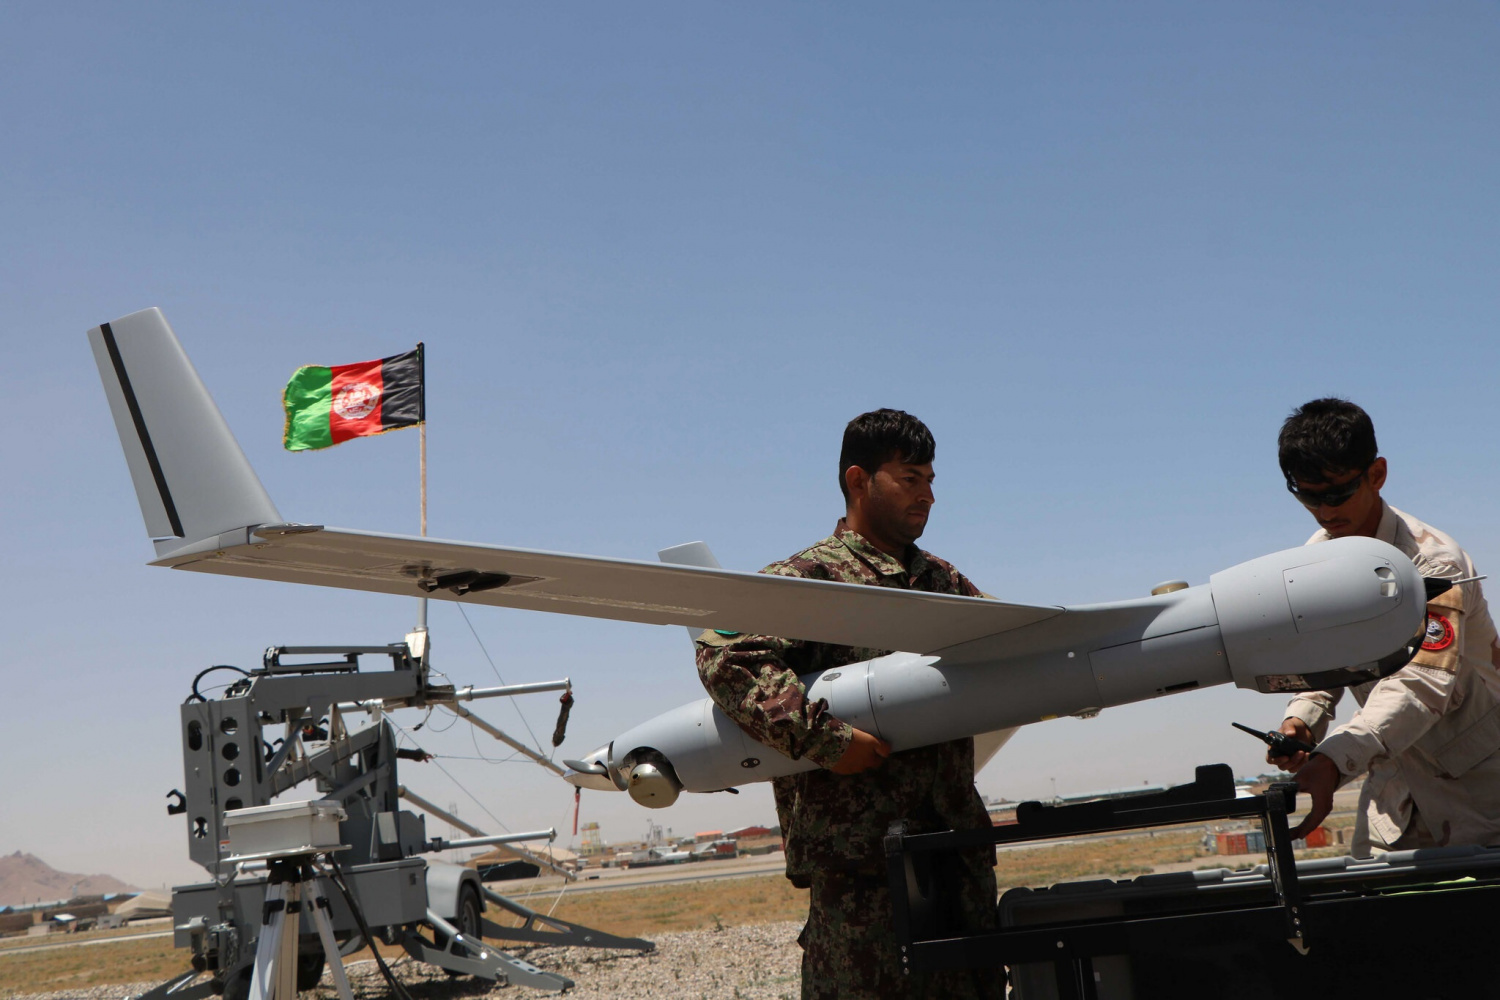 A Brief Look at the New and Old Weapons Arming the Taliban